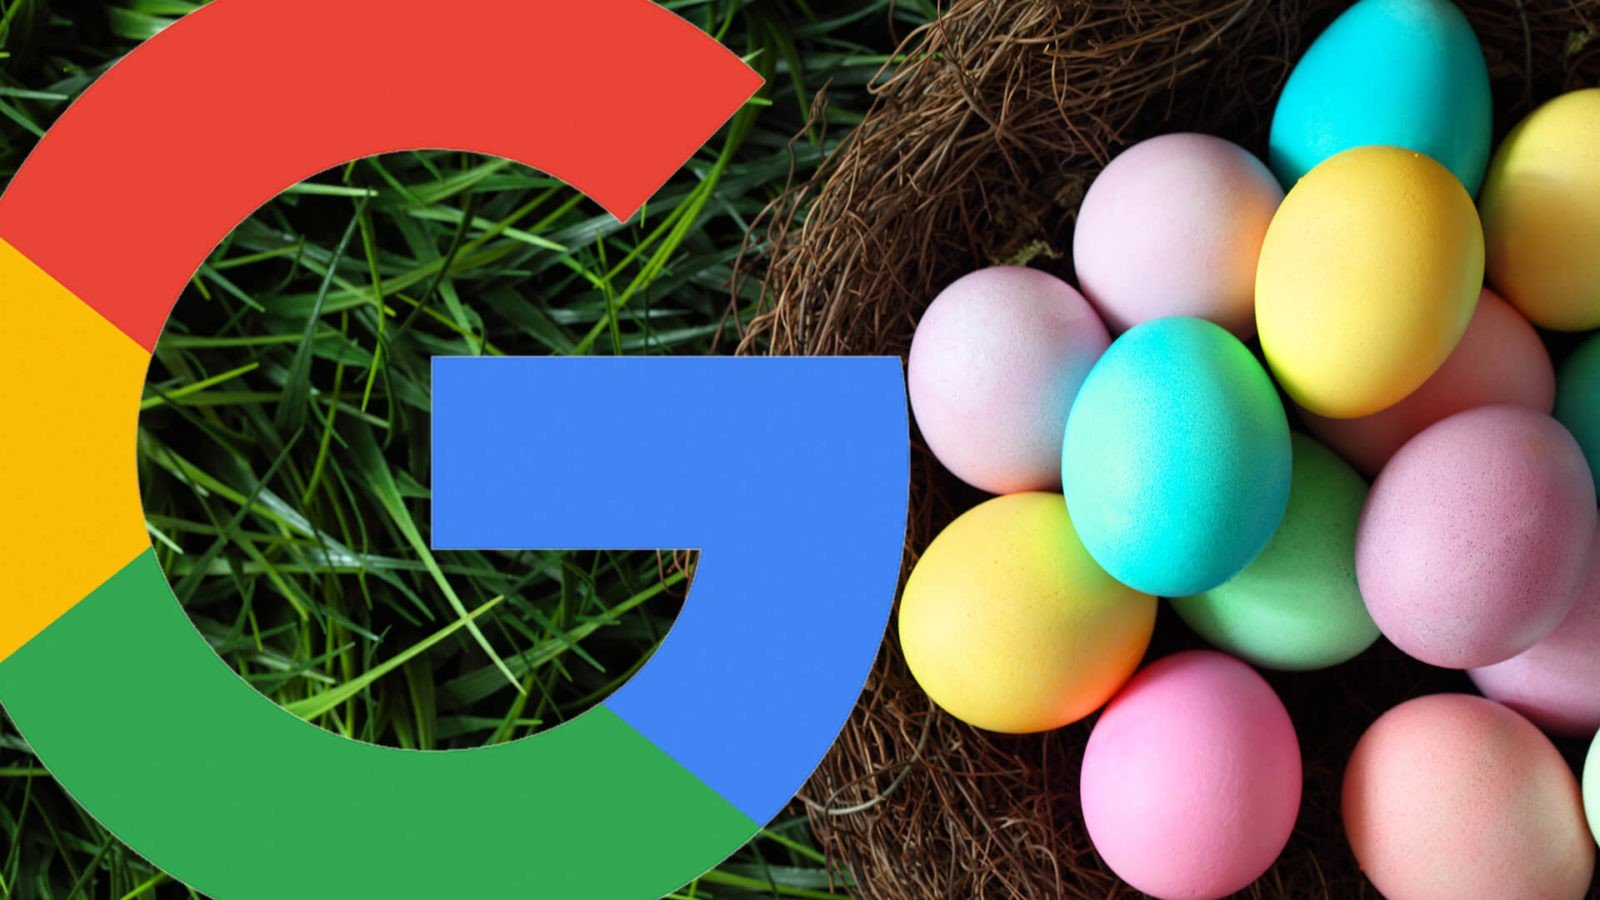 google easter eggs1 ss 1920